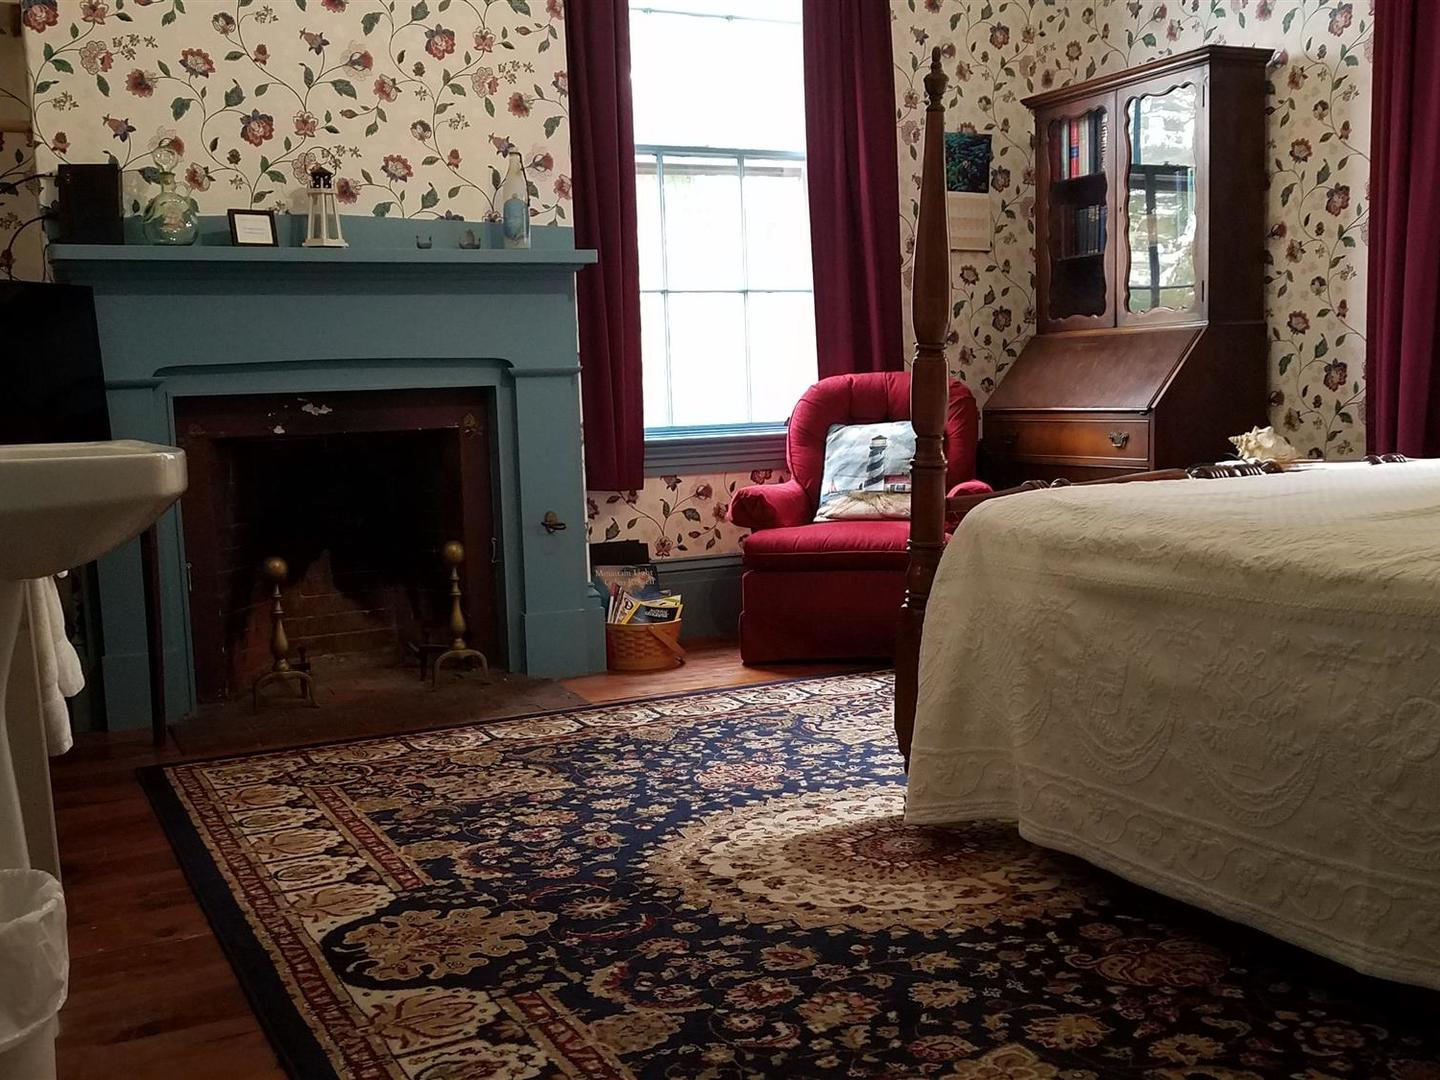 A bedroom with a large bed in a room at The Jeremiah Mason House Bed and Breakfast.